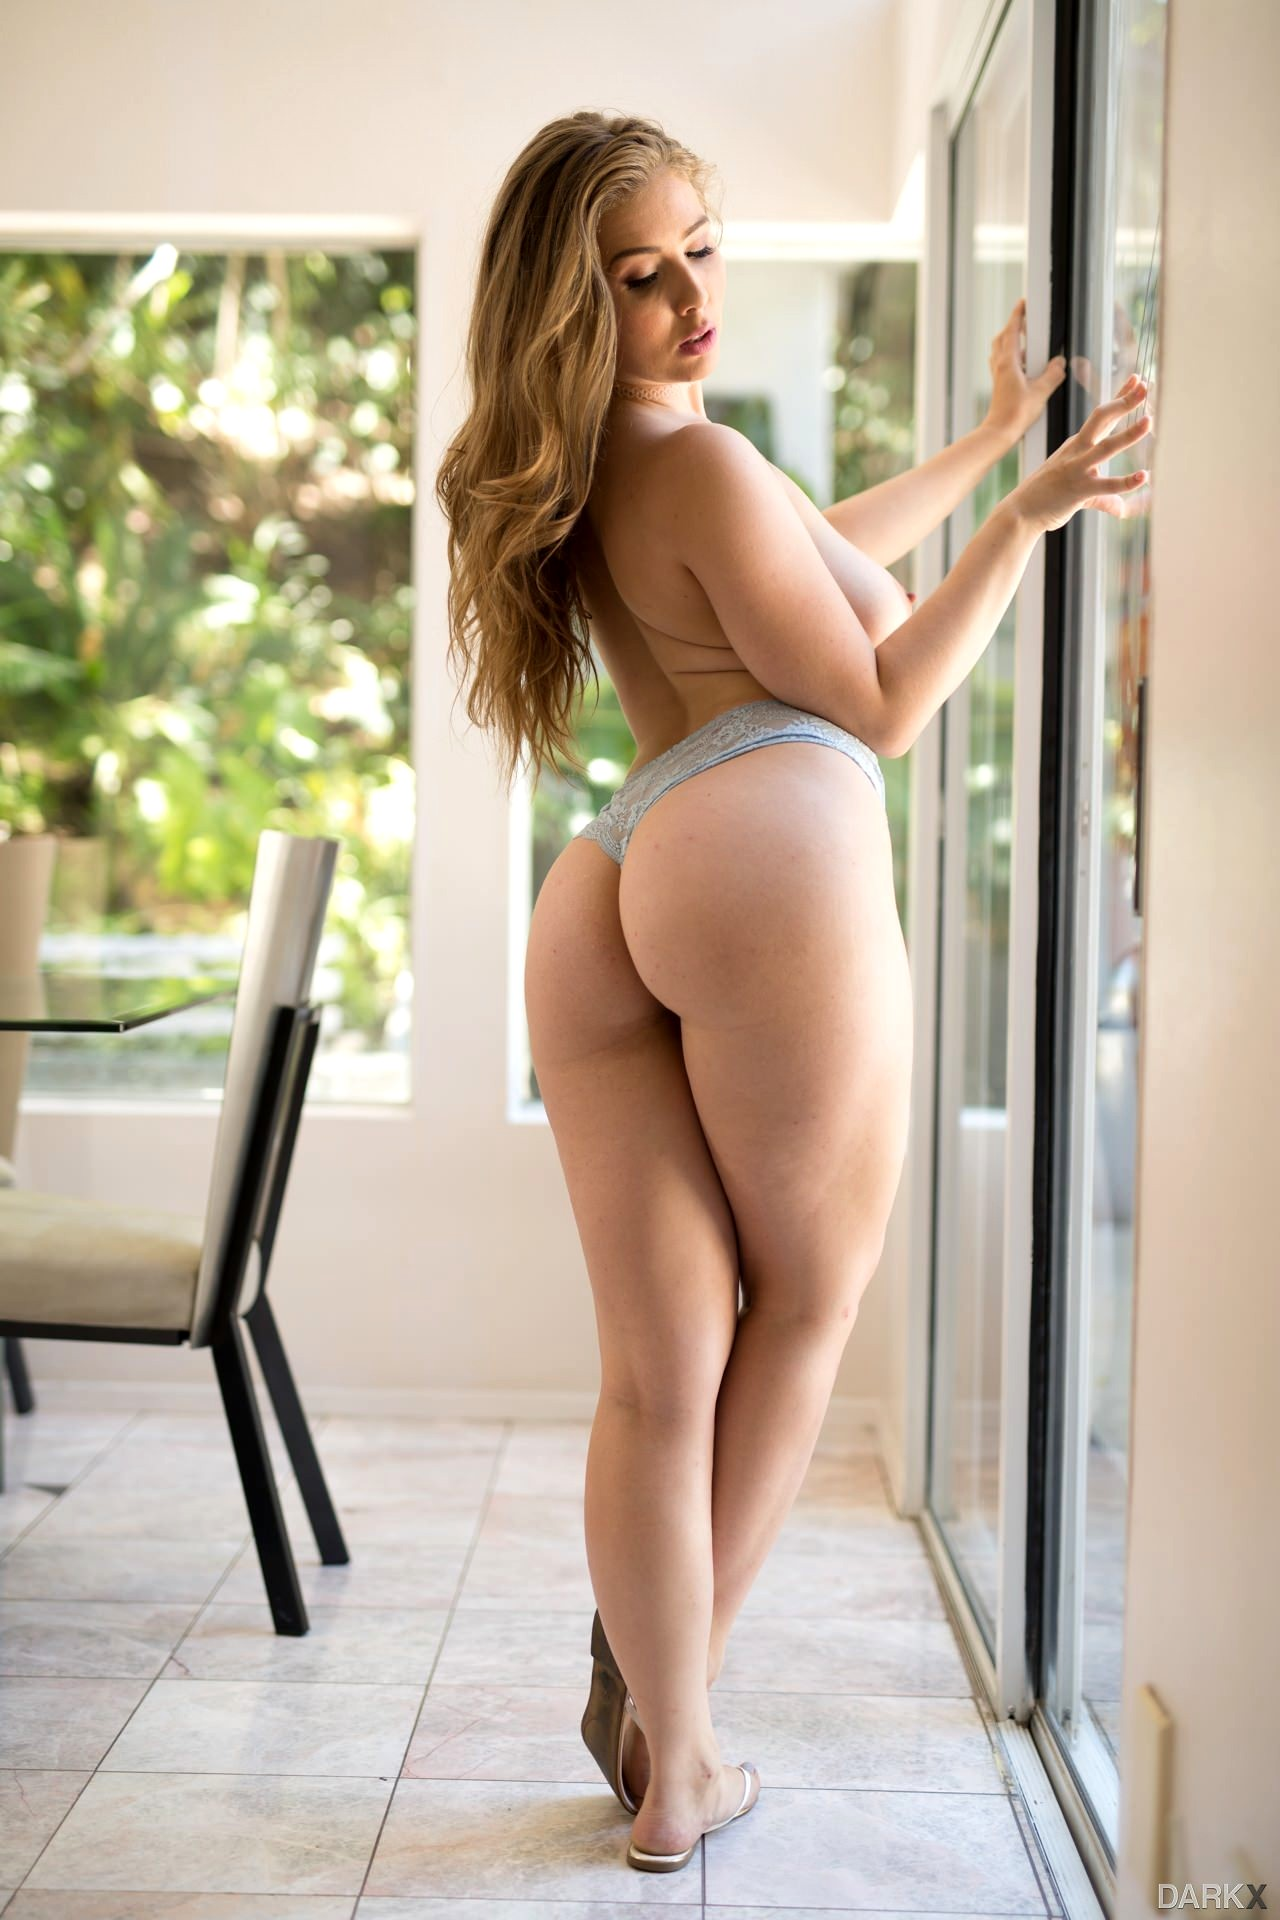 Lena paul pornstar ass